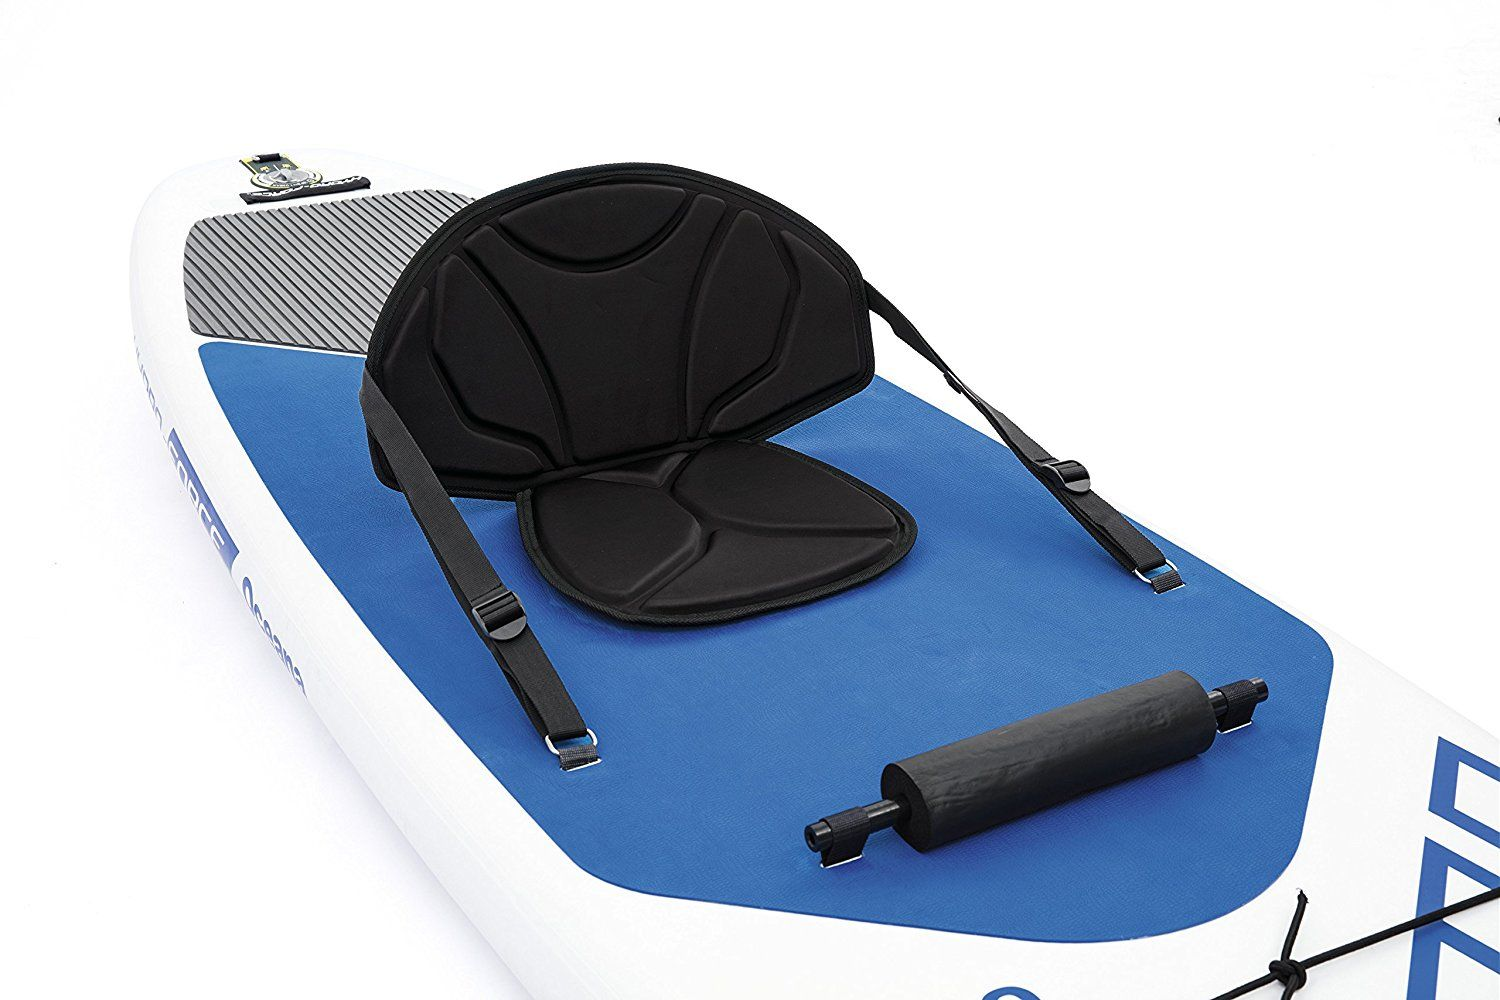 Tabla paddle surf hinchable-superoferta amazon